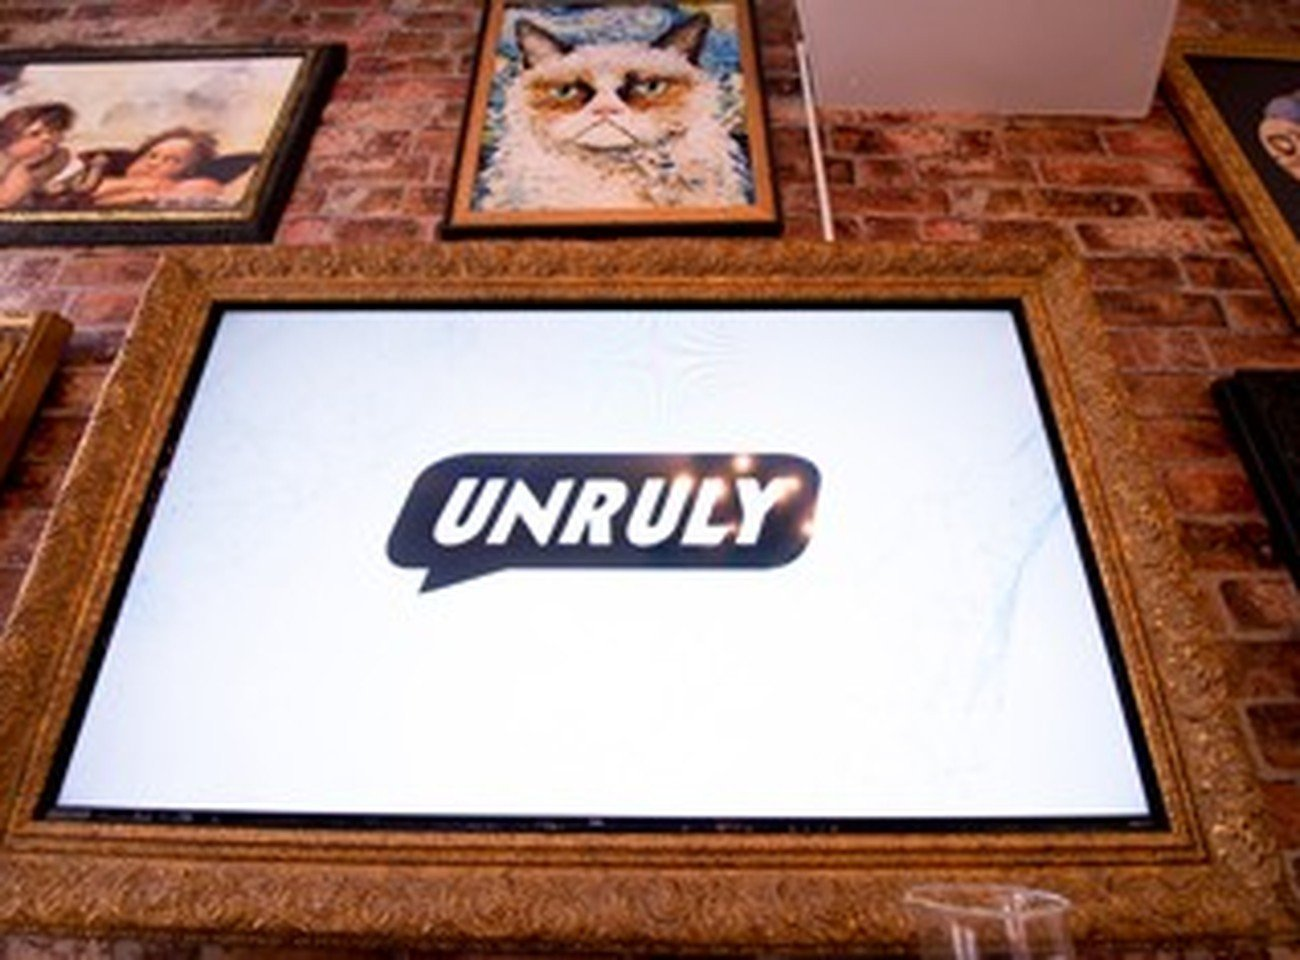 Unruly Careers